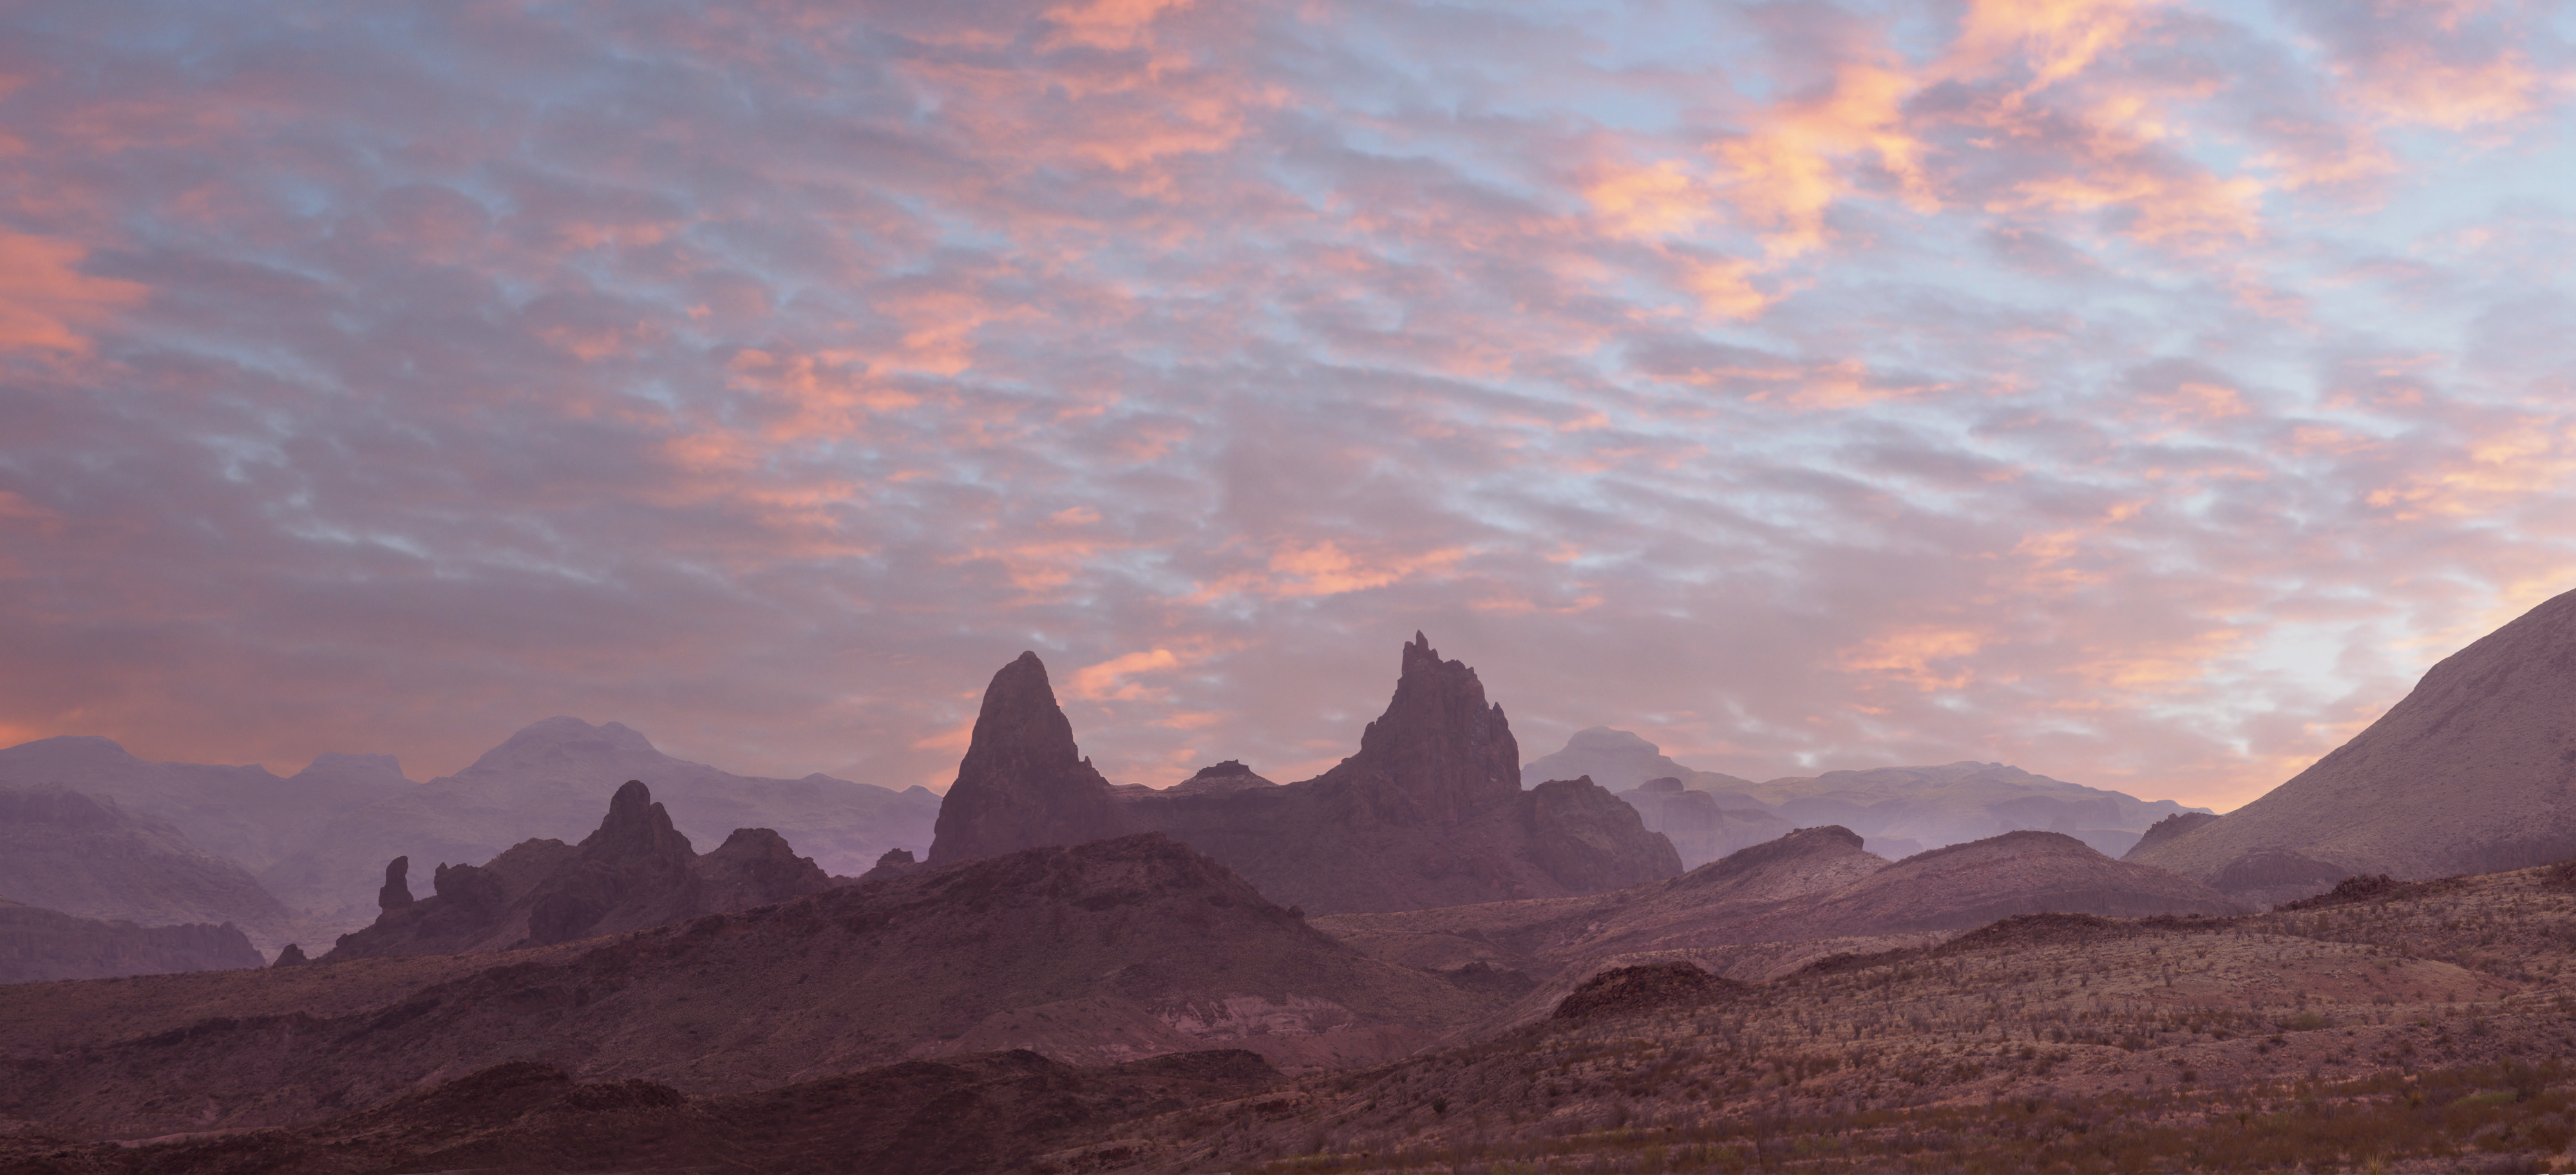 Sunset Over the Mule Ears Big Bend National Park